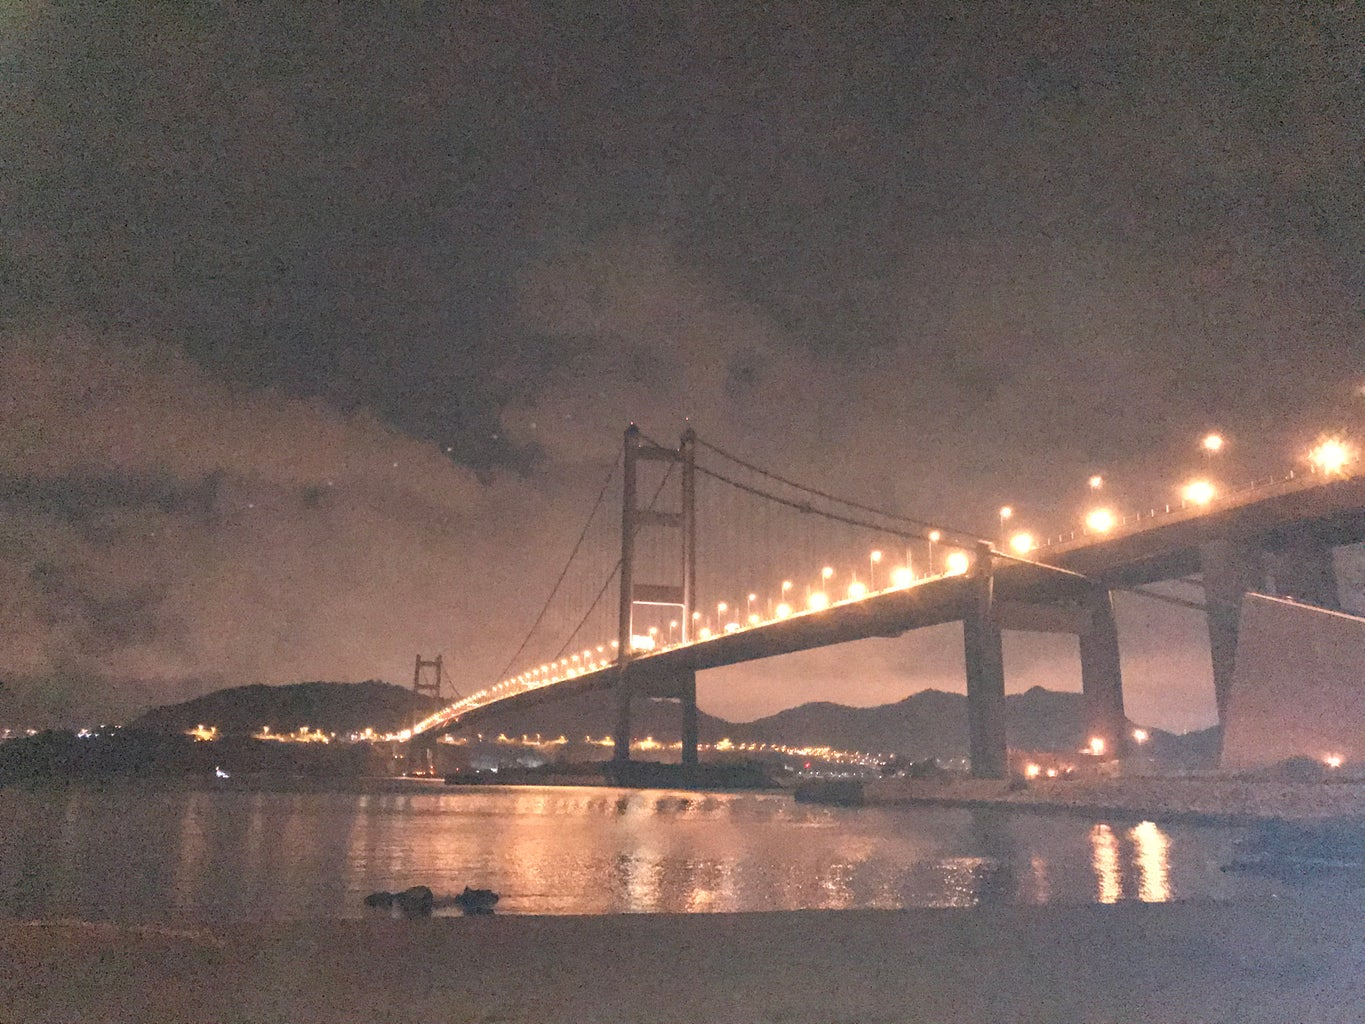 a beach next to a long, bright bridge at night, lights on the side of the bridge, city lights on the opposite side of the beach,